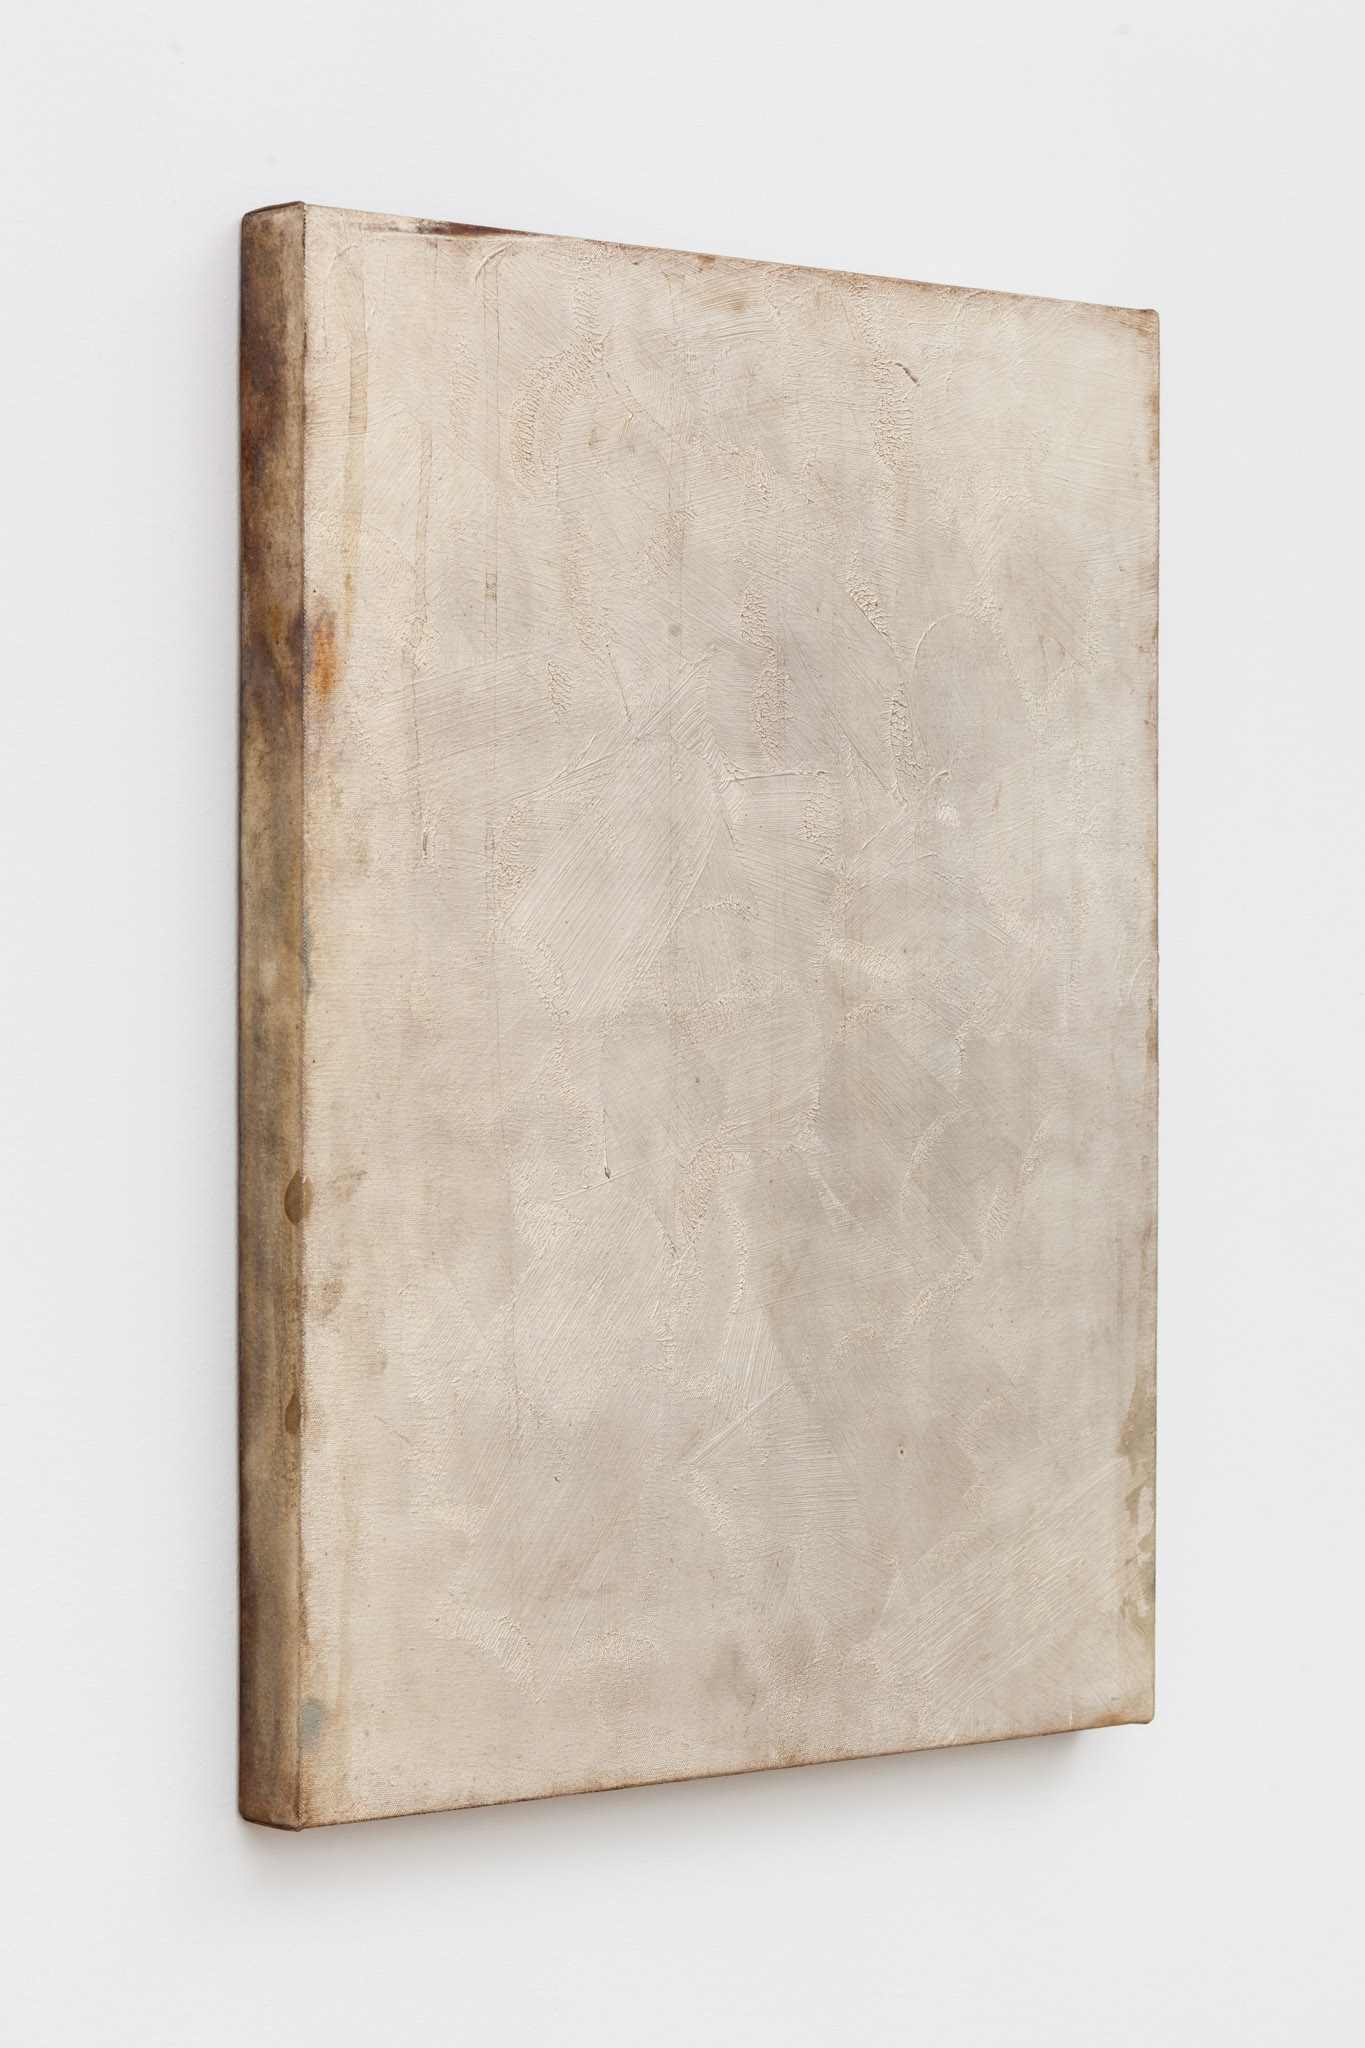 Type , 2014, copper electrotype, raw patina, 24 x 18 x 1.5 inches, (61 x 45.7 x 3.8 cm)